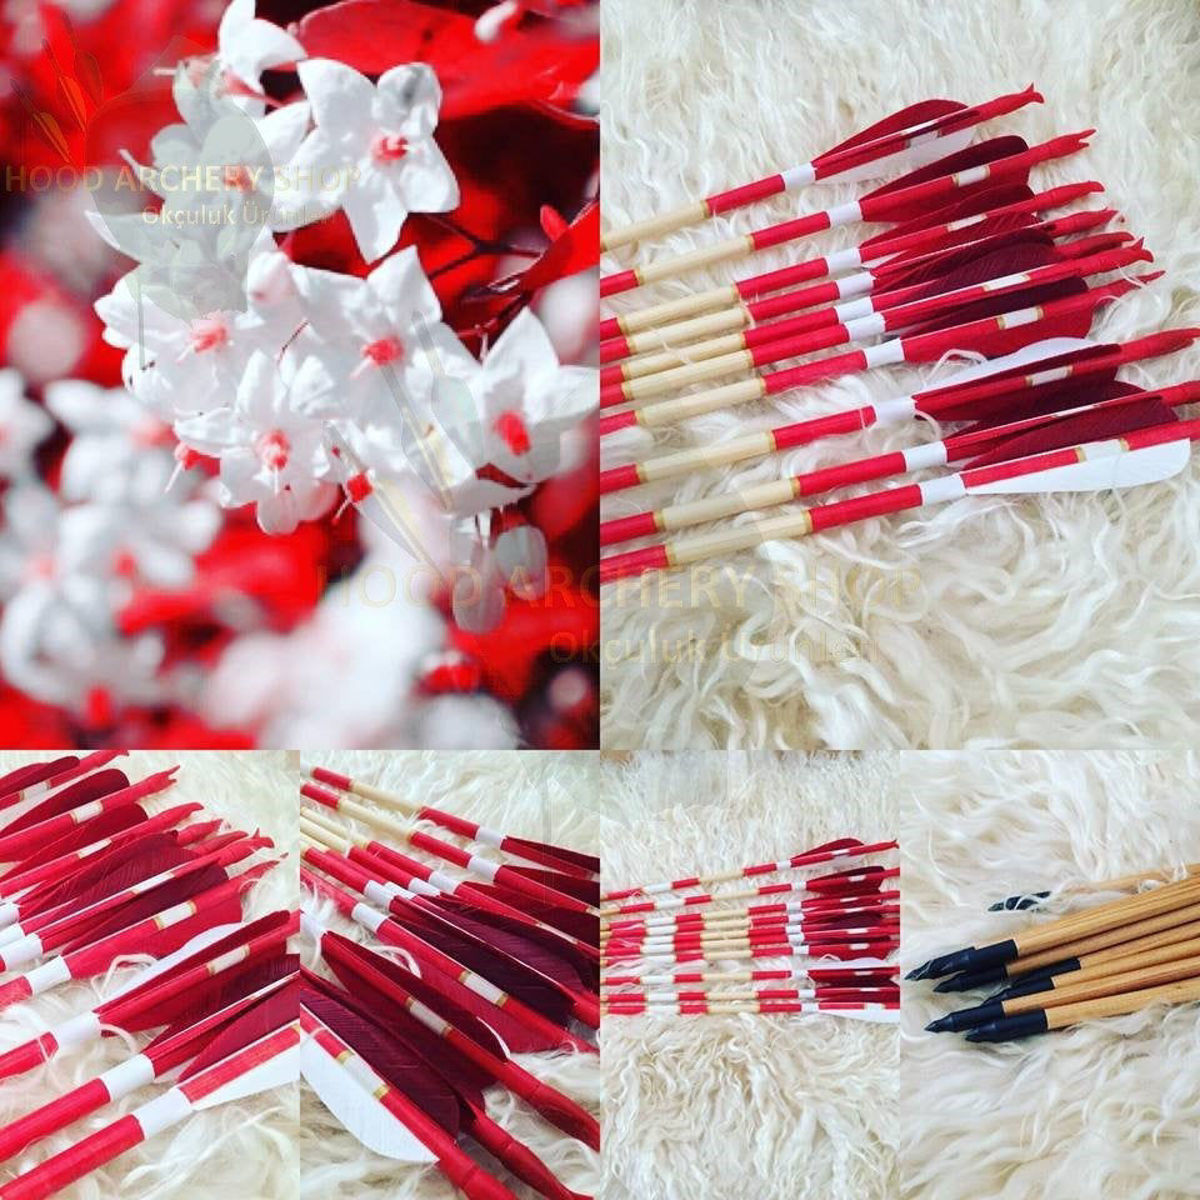 Picture of Wooden Archery Arrow For Recurve Longbow Bow Medieval Traditional Ottoman Hunting Shoot with Red White Turkey Feather